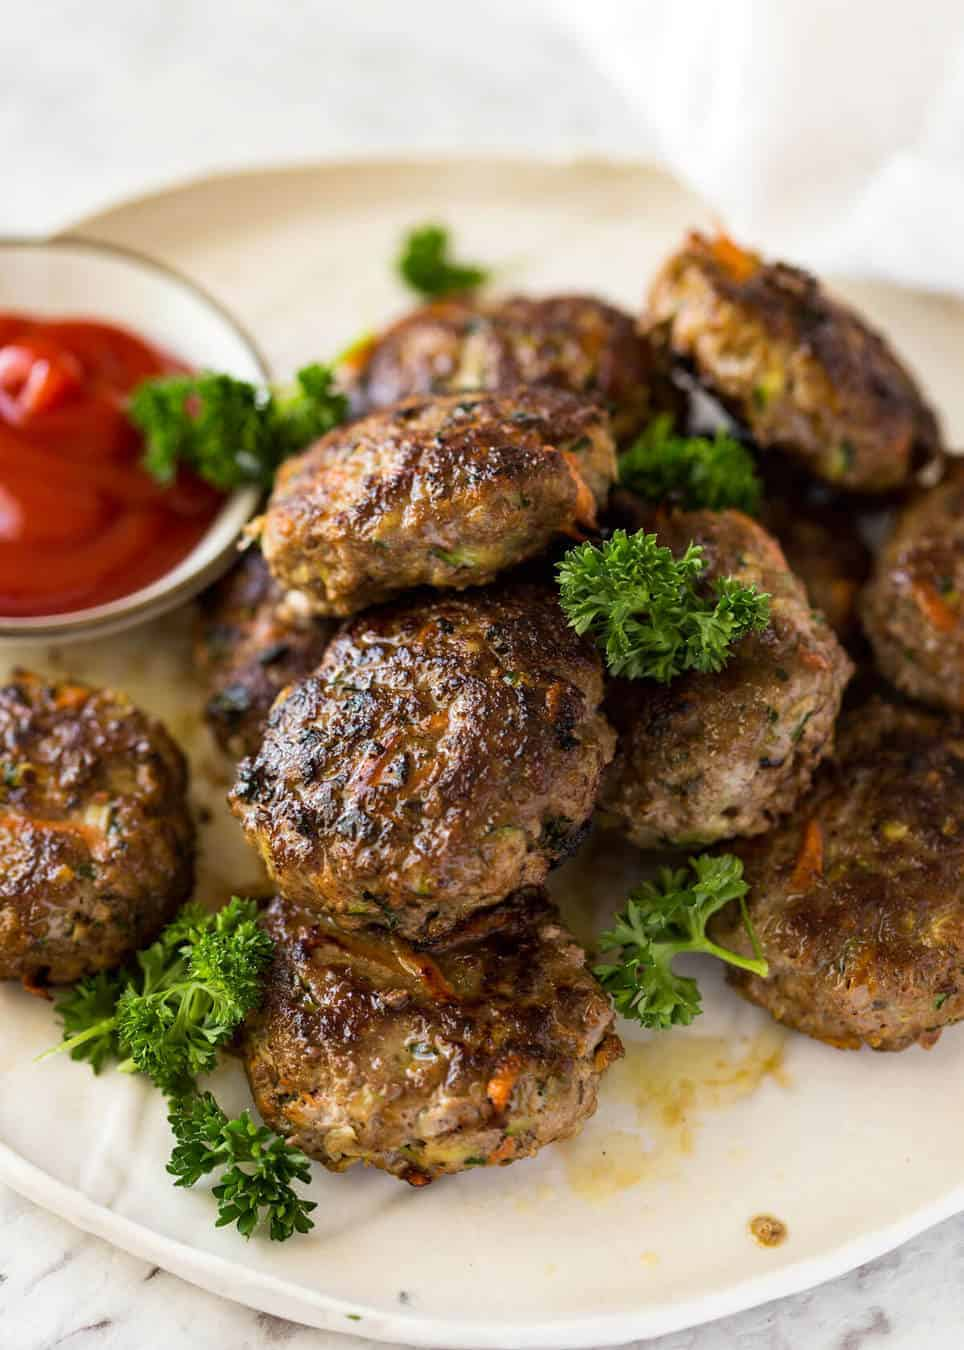 This is how to make plump, juicy, extra tasty rissoles with hidden veggies! www.recipetineats.com